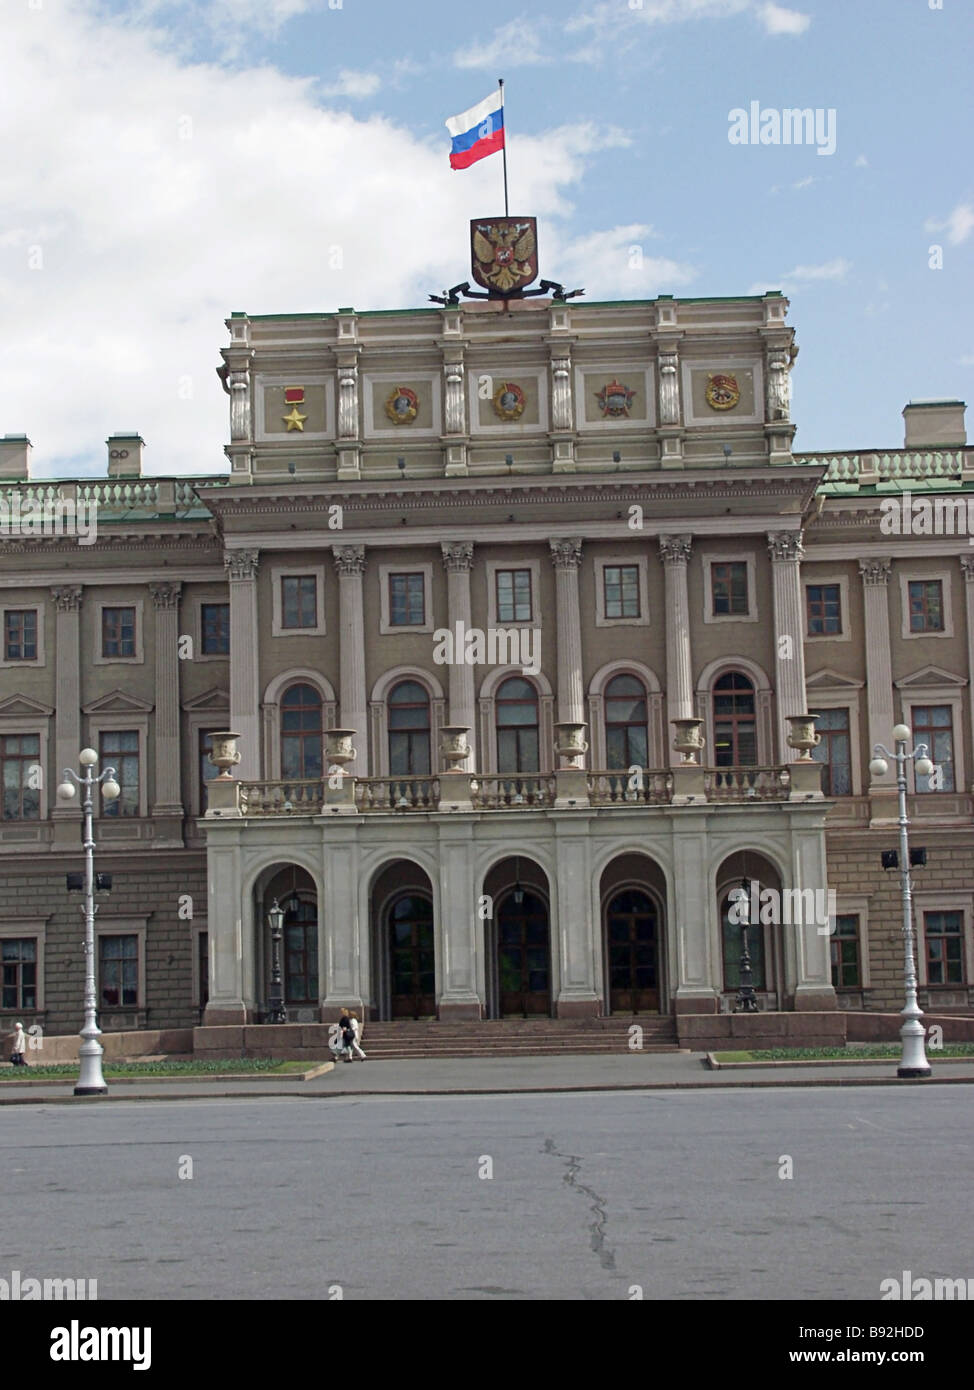 City hall building Mariinsky Palace on St Isaac s Square which houses the Legislative Assembly of St Petersburg - Stock Image